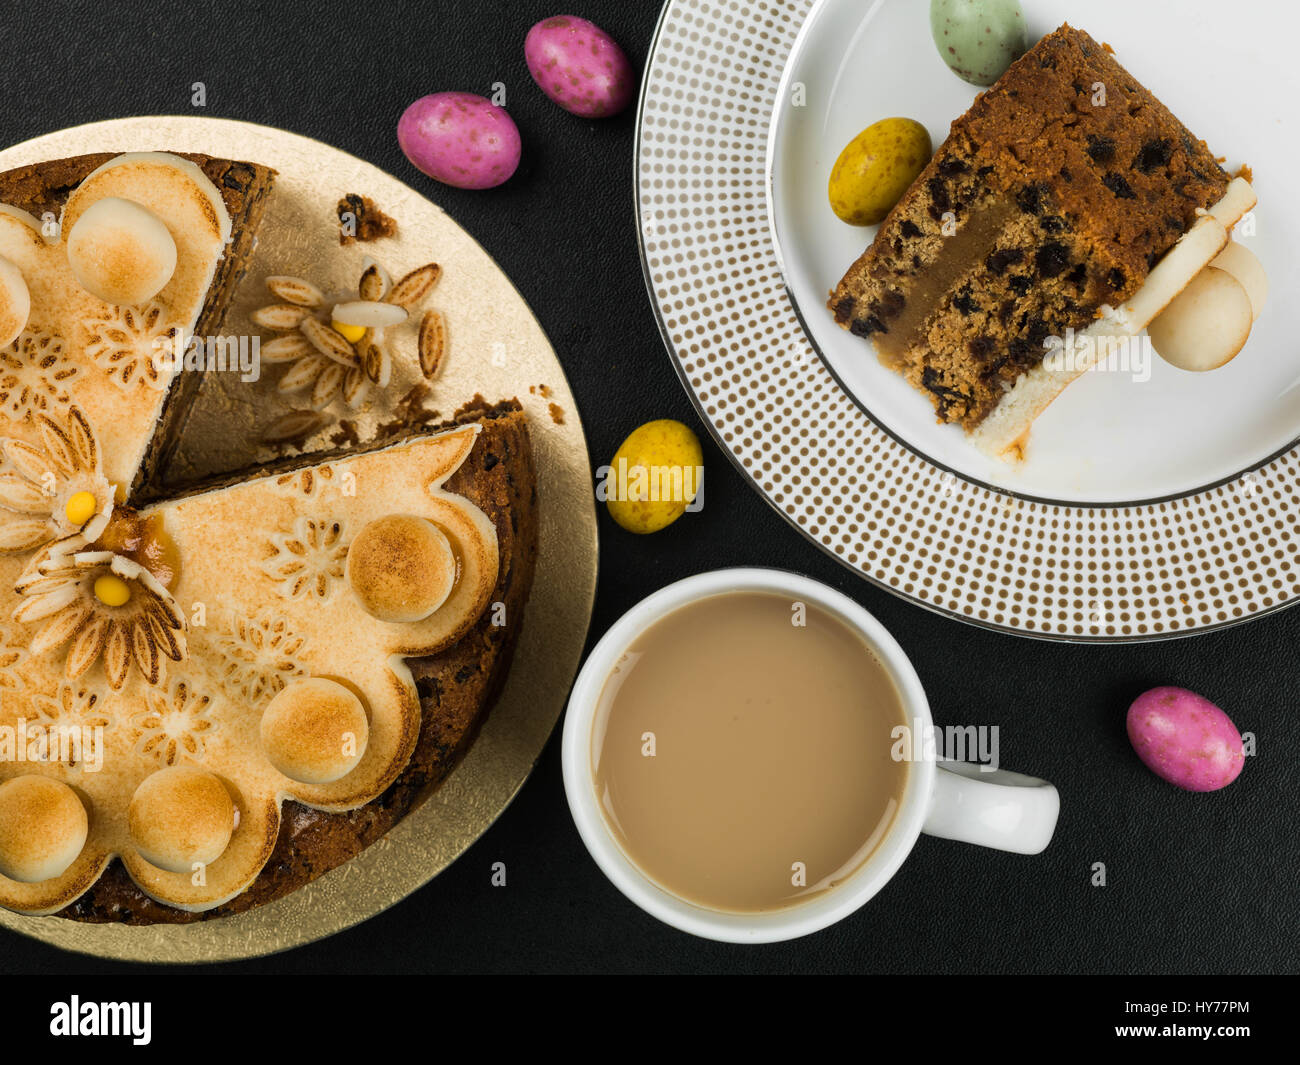 Easter Simnel Cake With Marzipan Icing and Decorations Against a Black Background Stock Photo